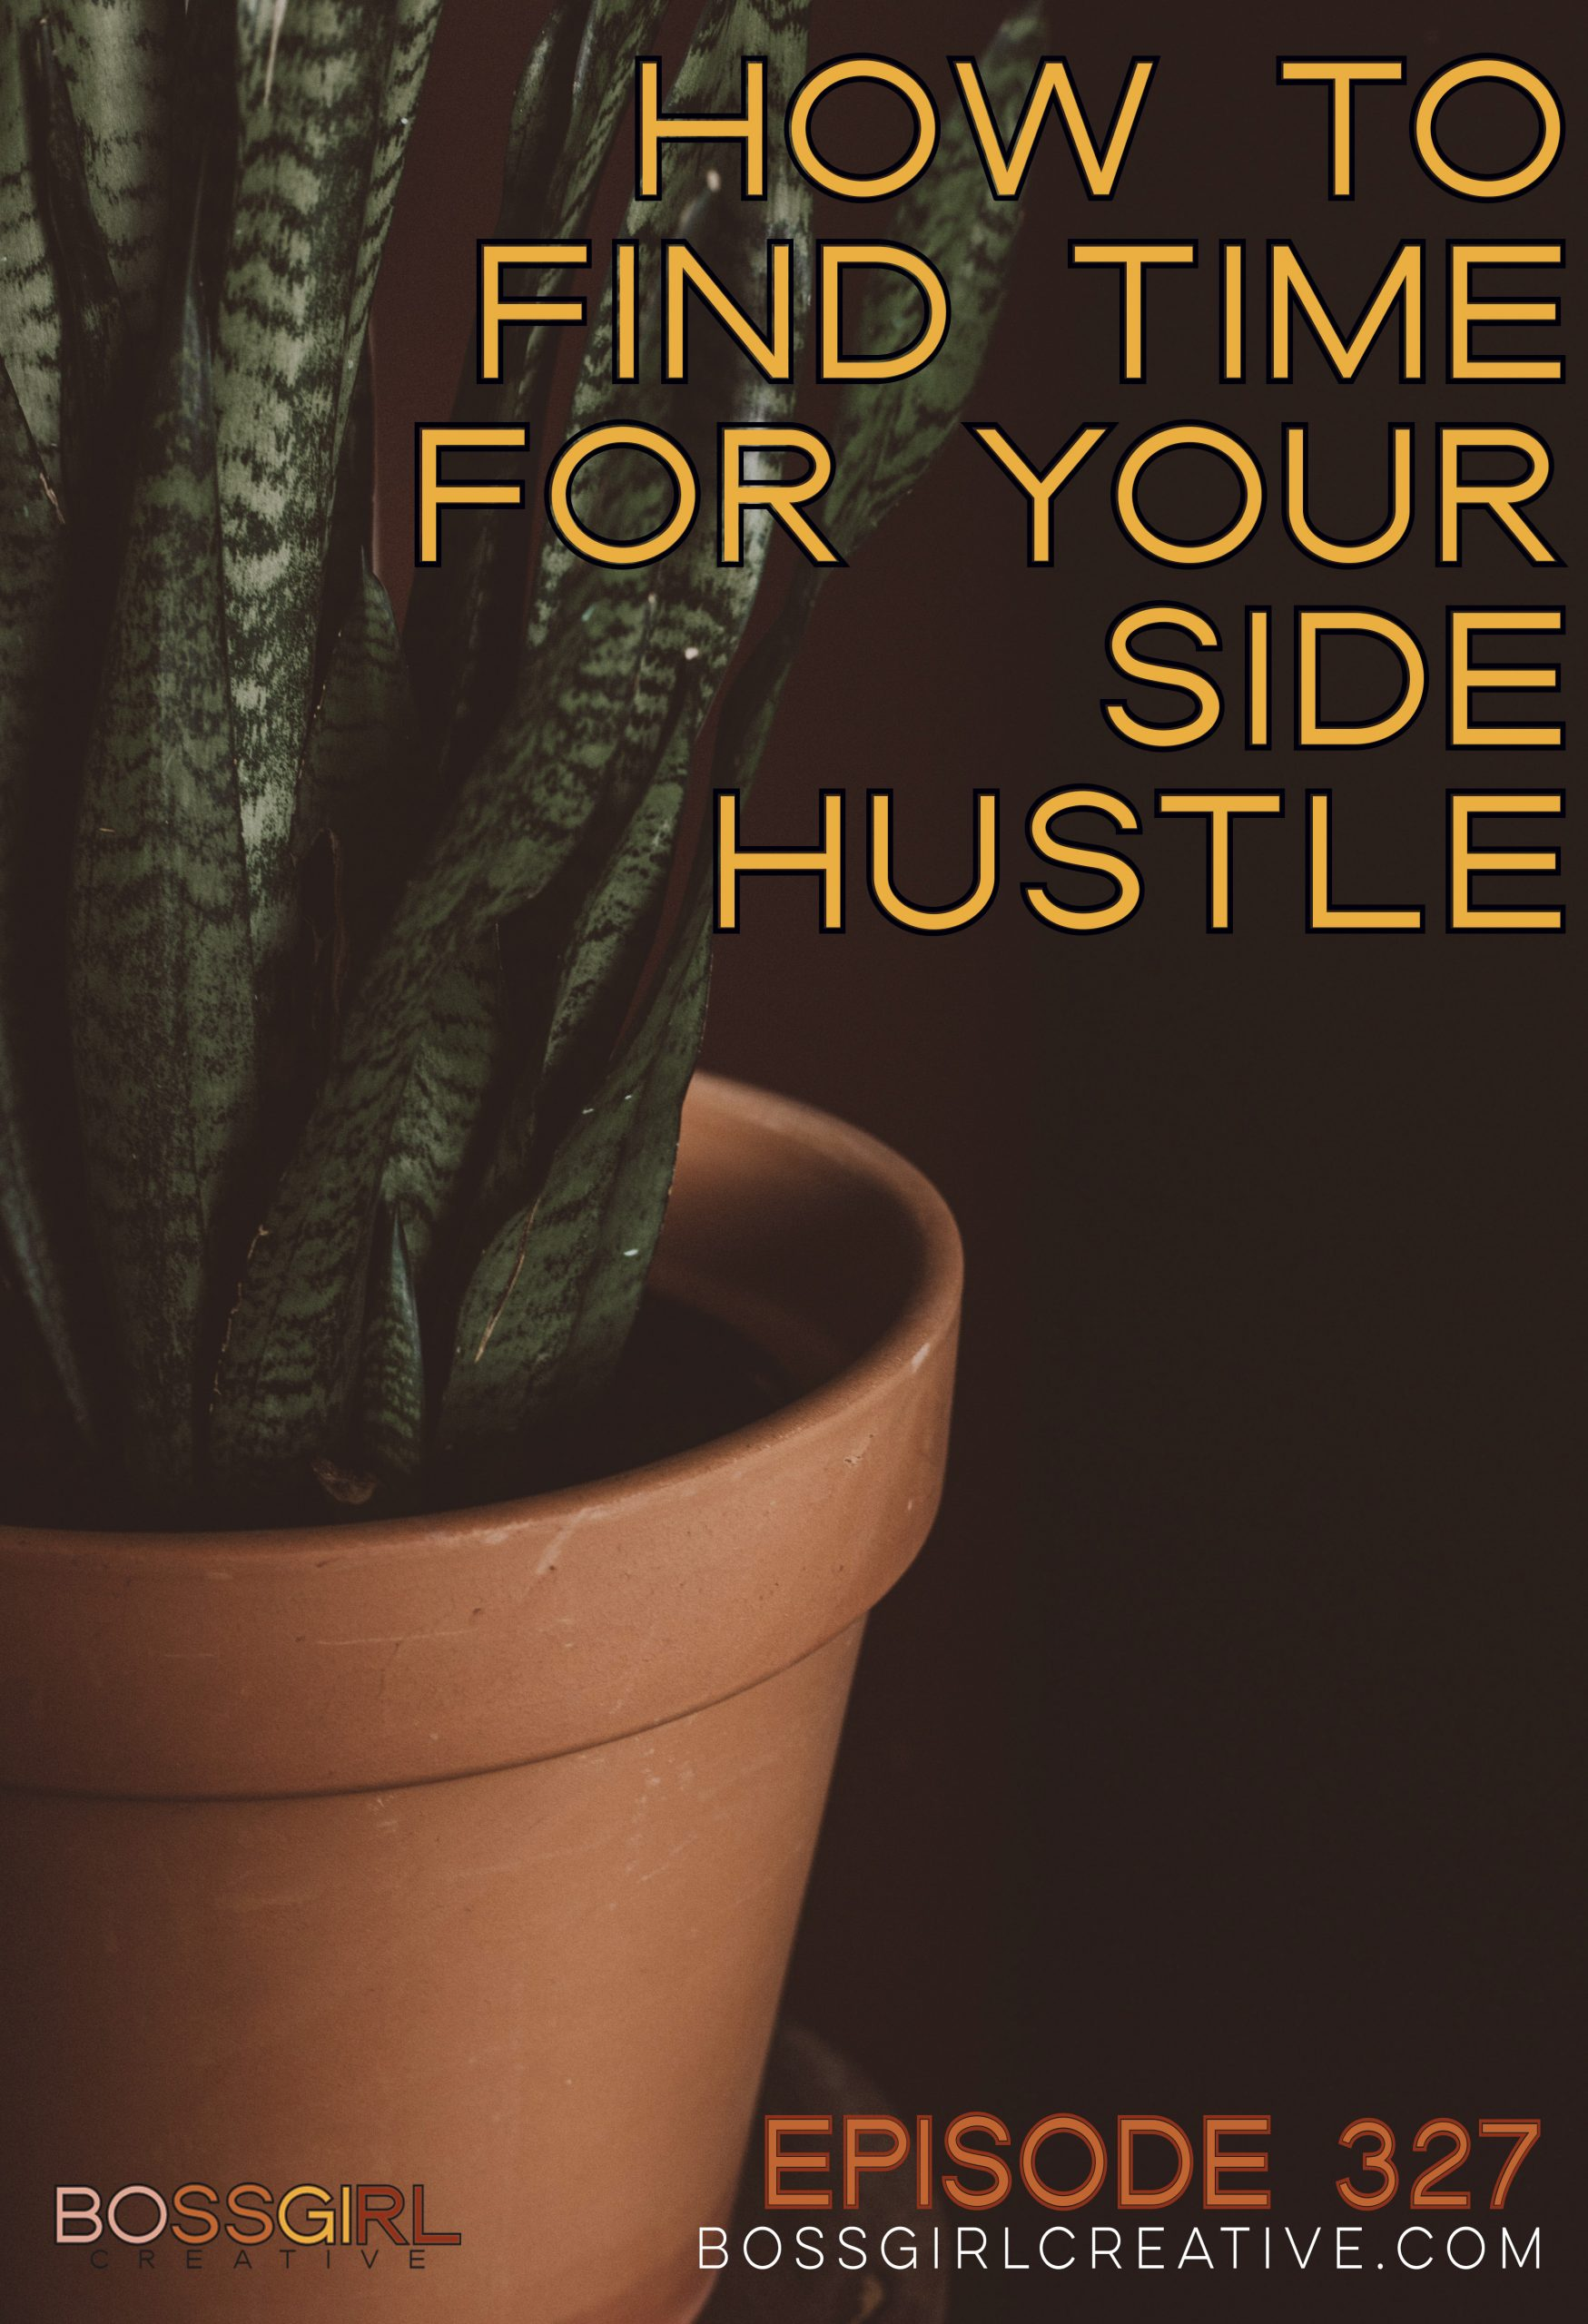 Boss Girl Creative Podcast: Episode 327 - How to Find Time for Your Side Hustle